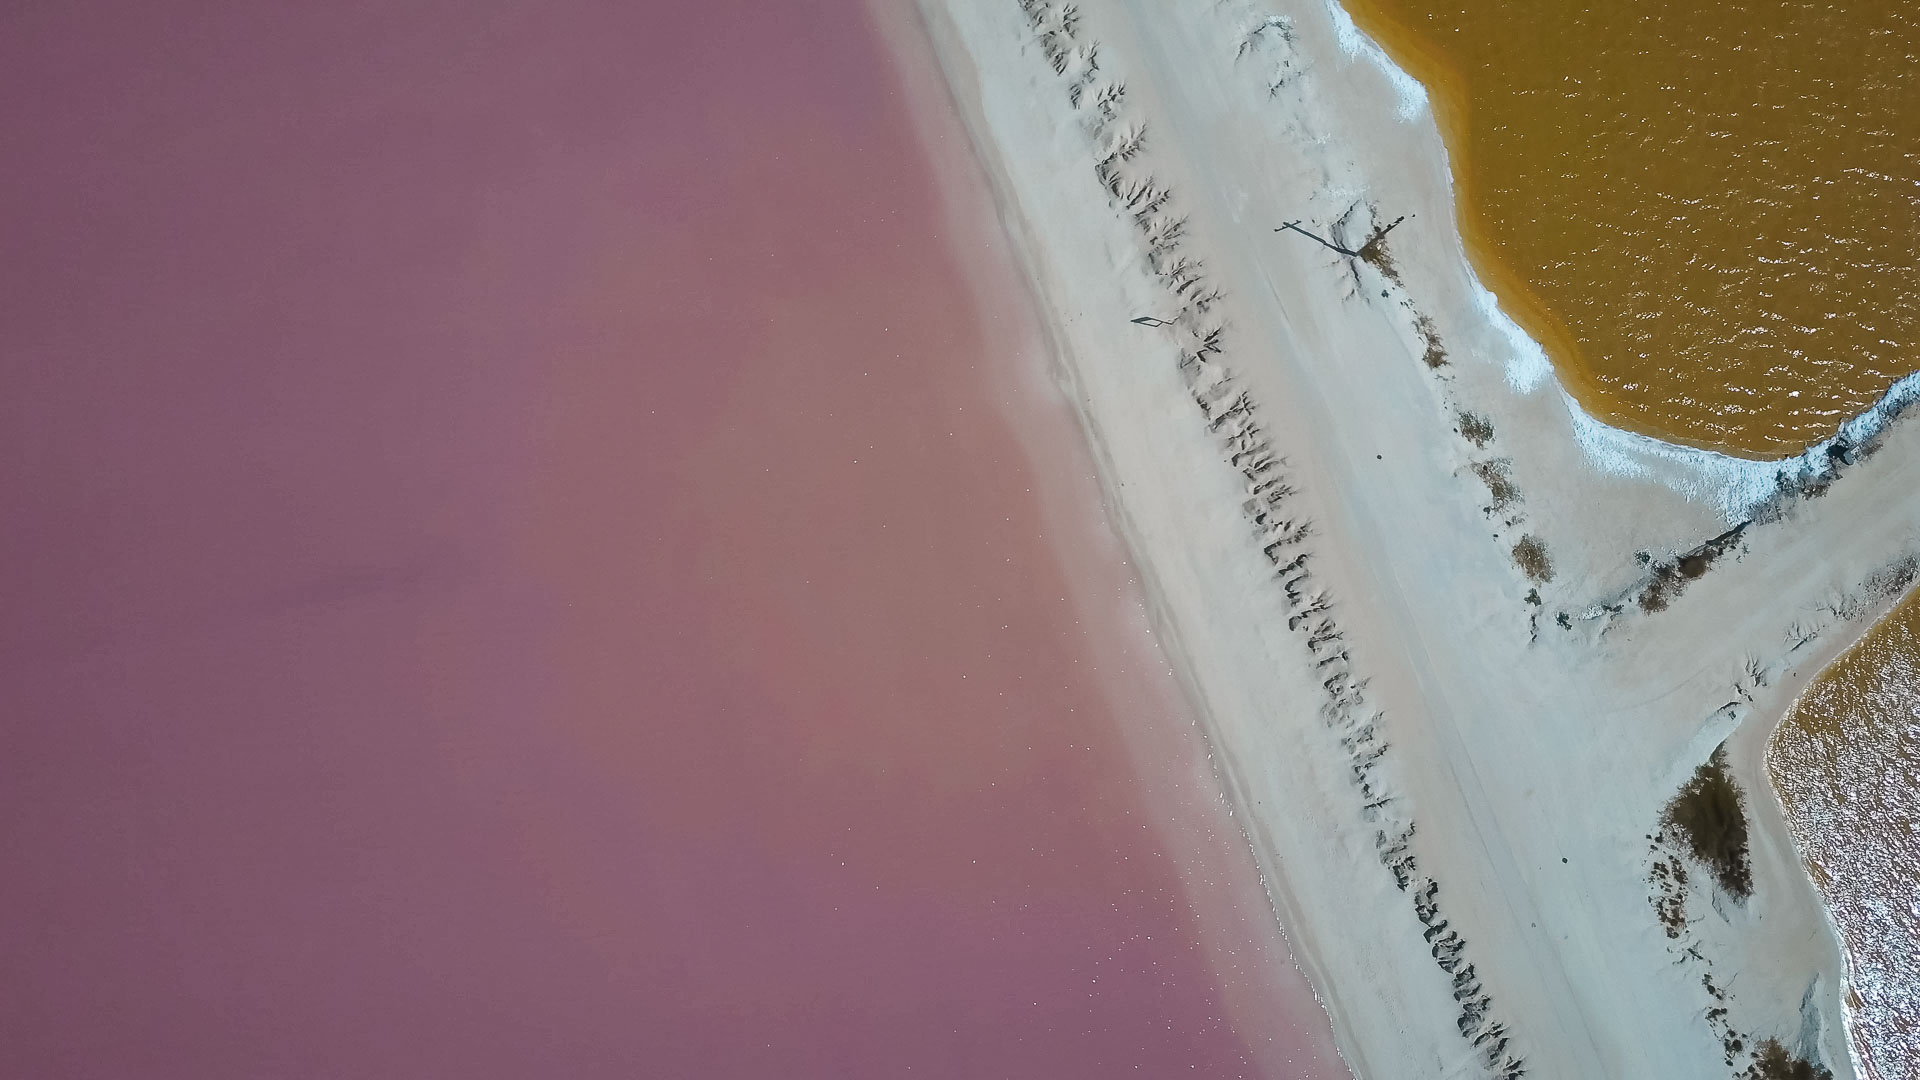 Link lakes, Las Coloradas, Mexico